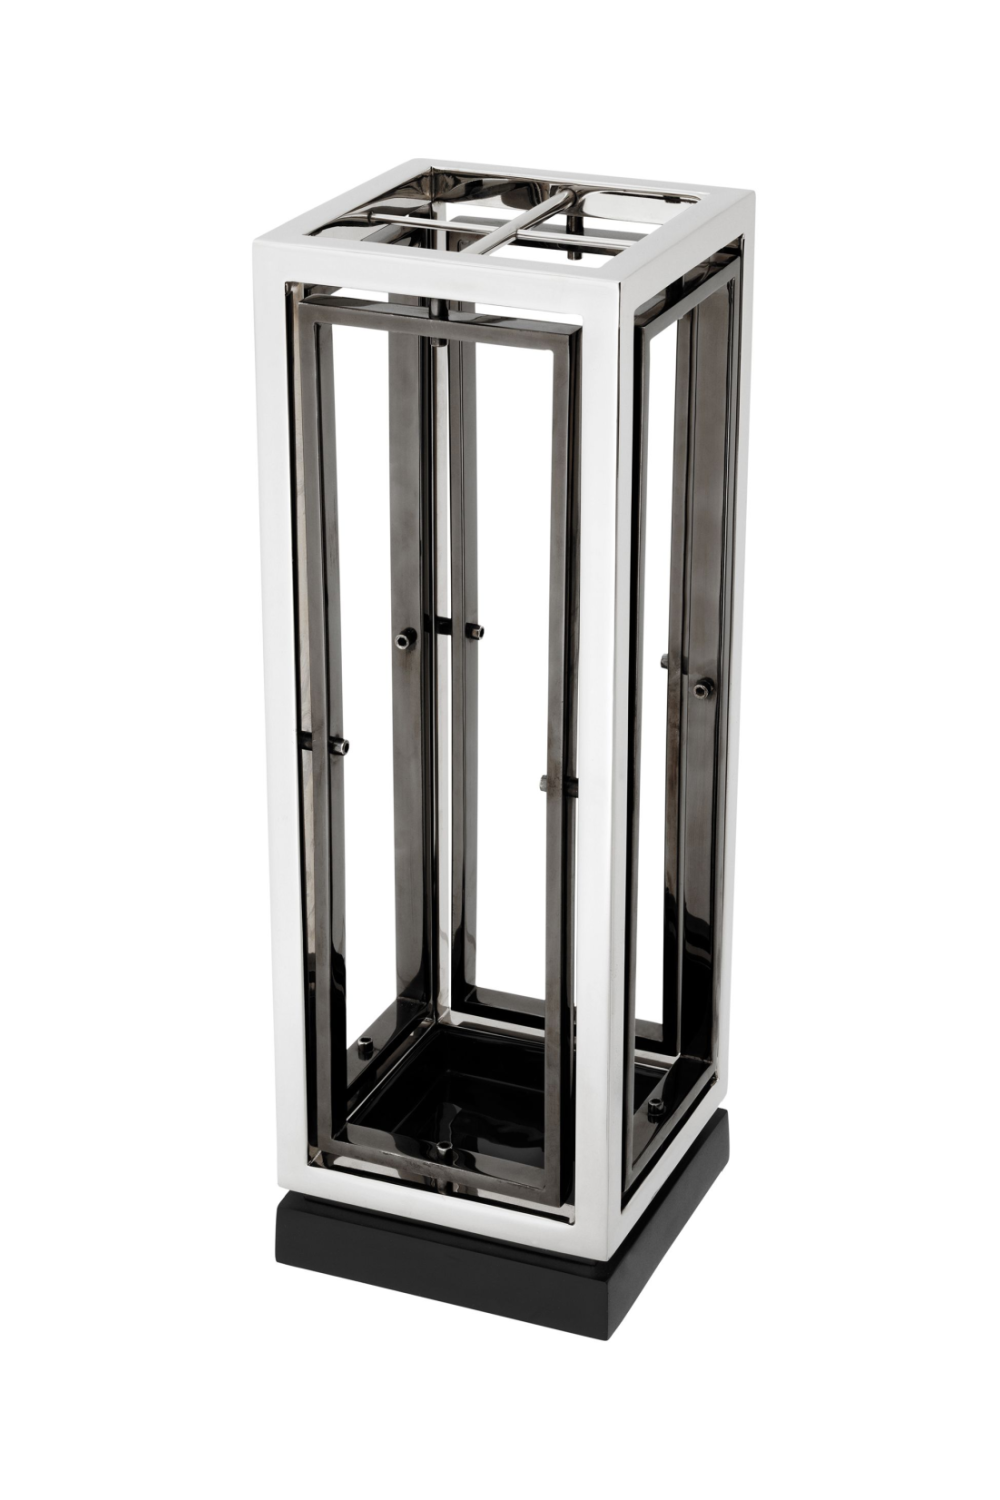 Black Nickel Umbrella Stand | Eichholtz Blackrock